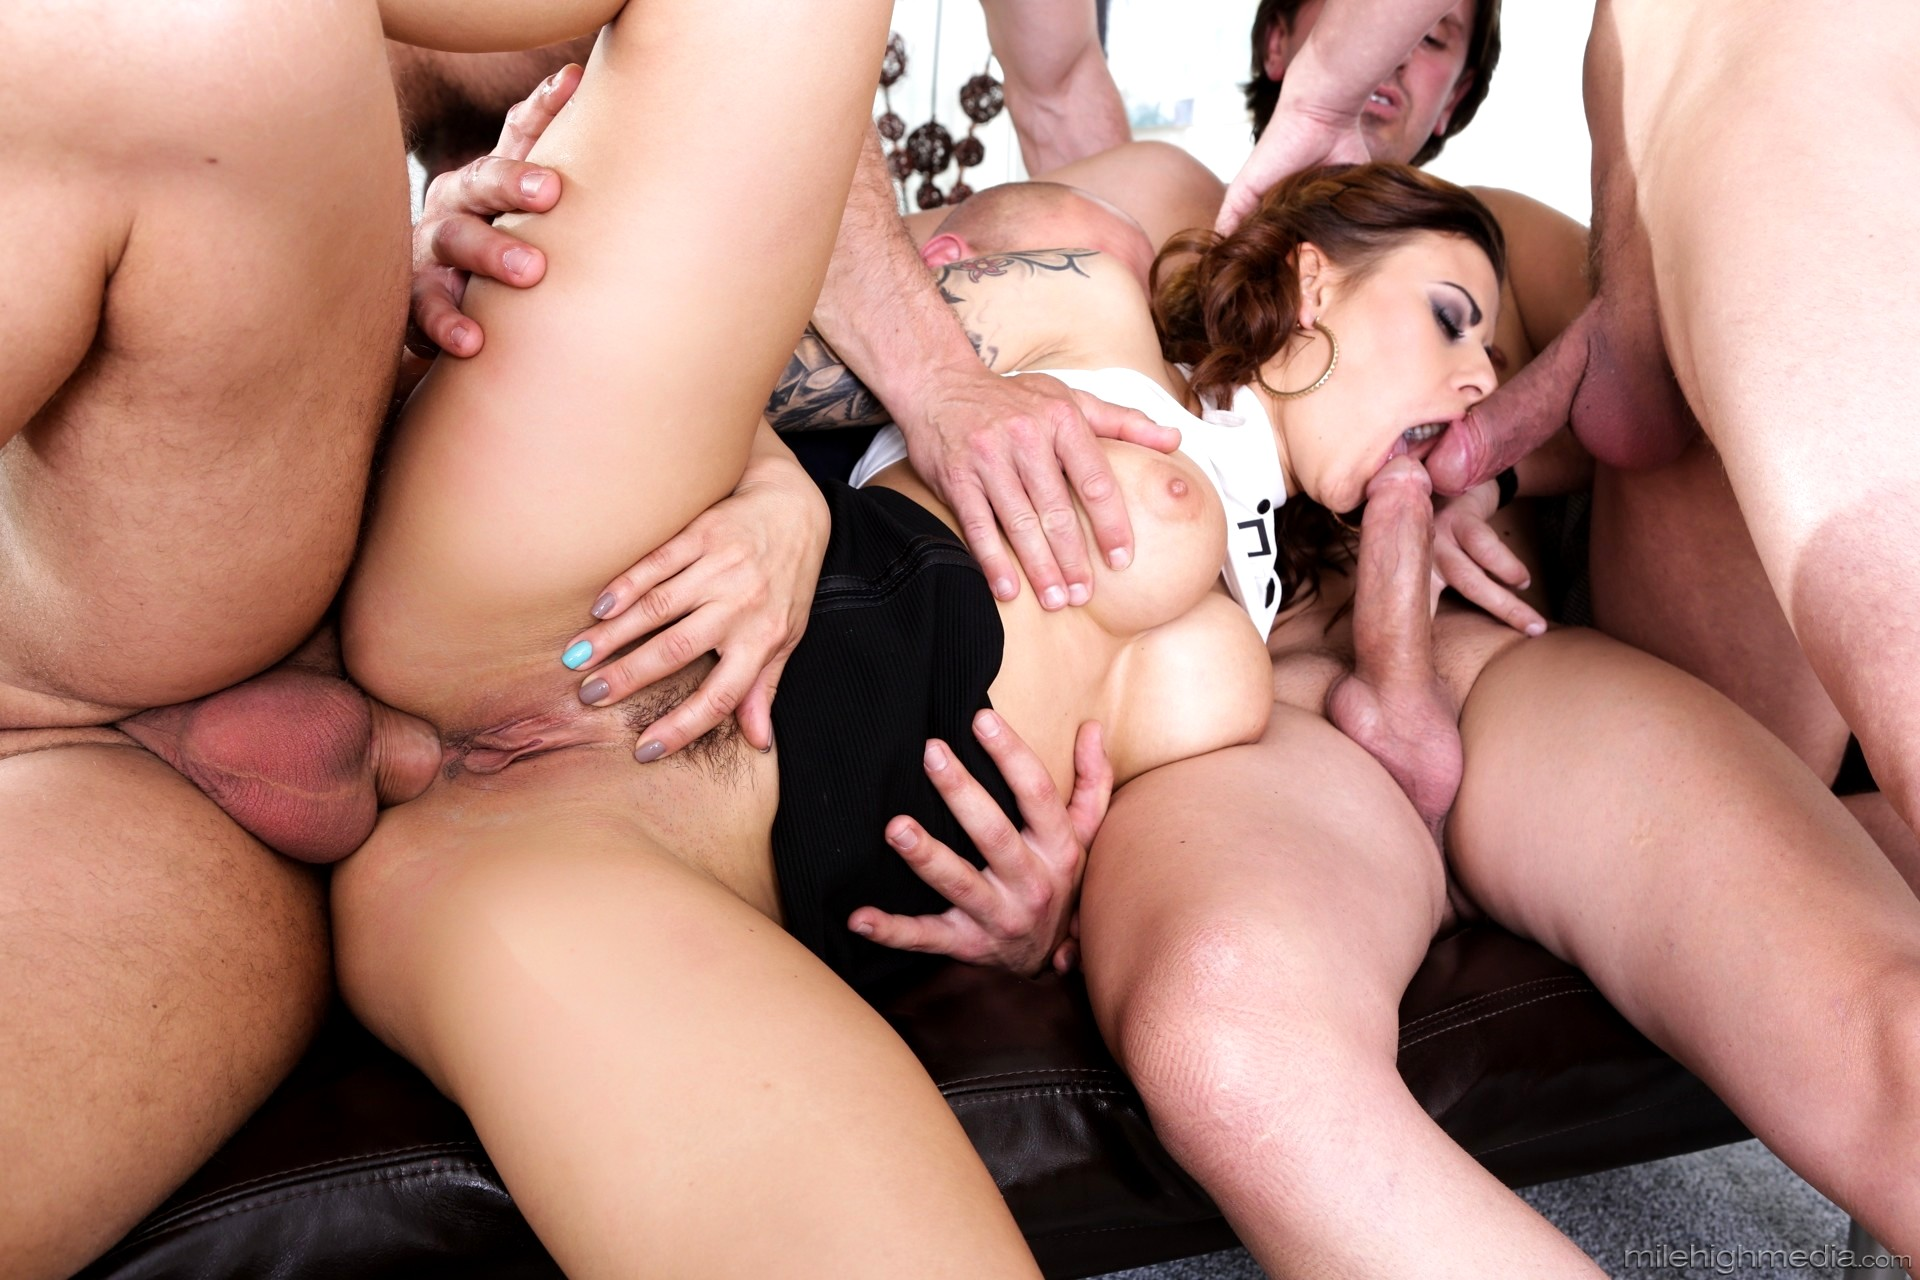 Xxx wife inseminated by gang bang free xxx galeries